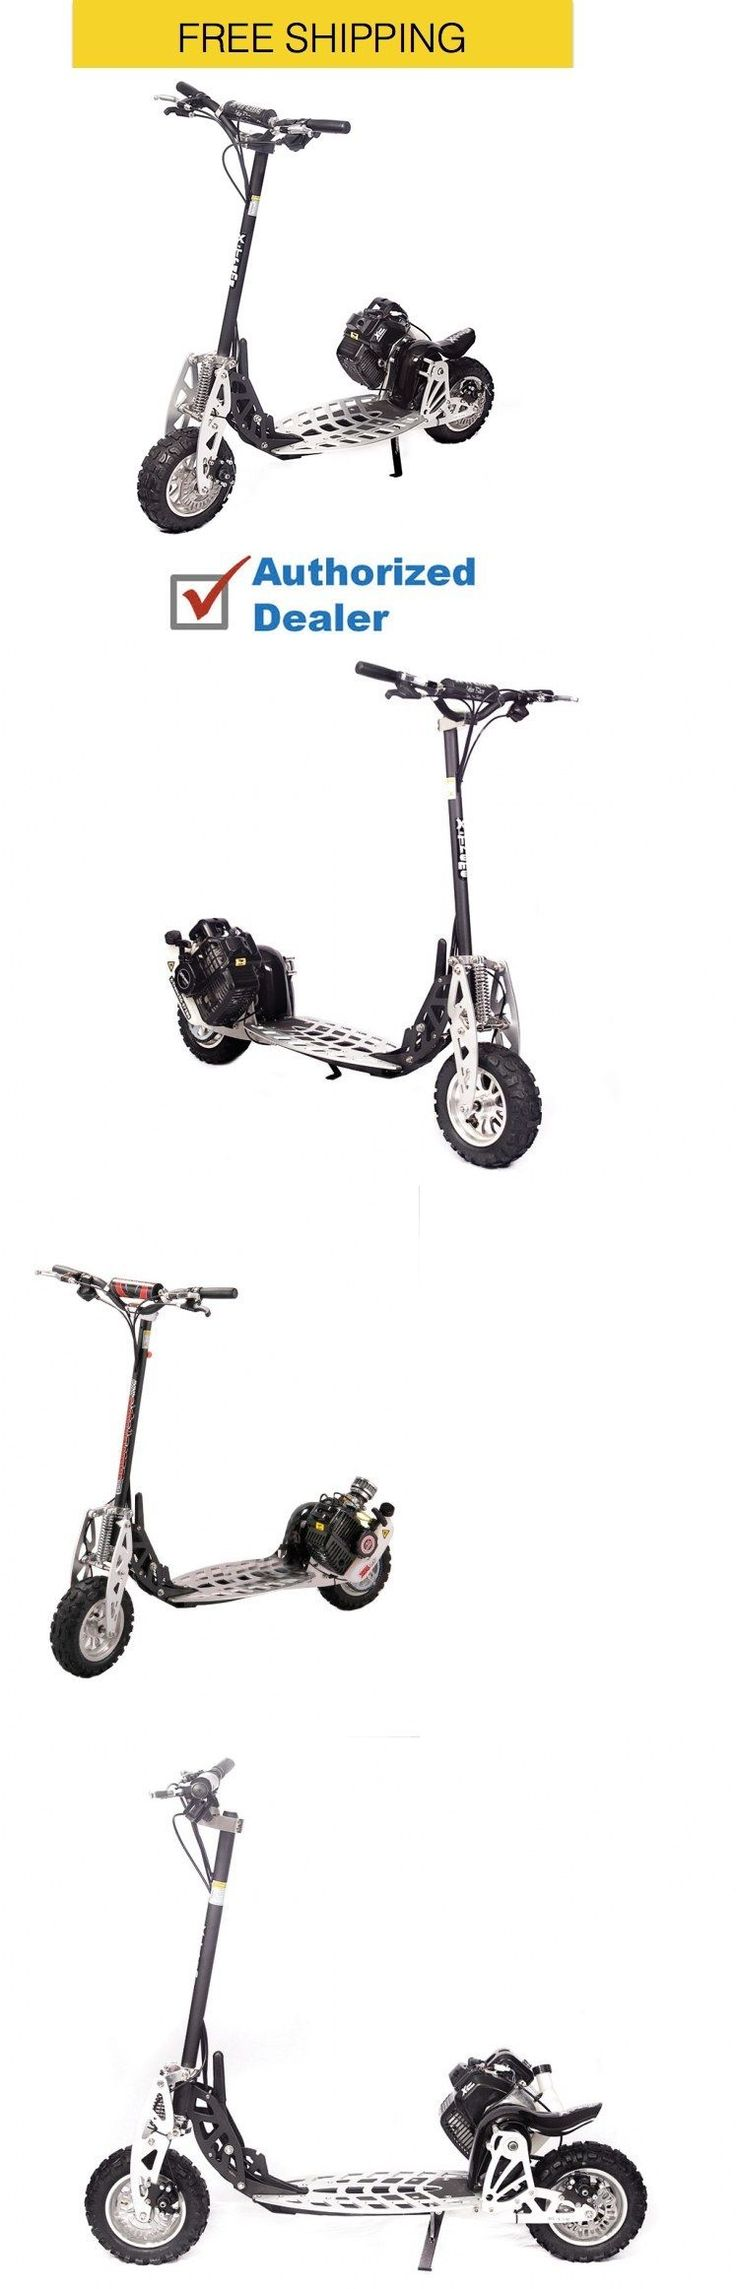 Gas Scooters 75211: X-Treme Xg-575-Ds Gas Scooter Highest Performance Speed Free Shipping -> BUY IT NOW ONLY: $549 on eBay!